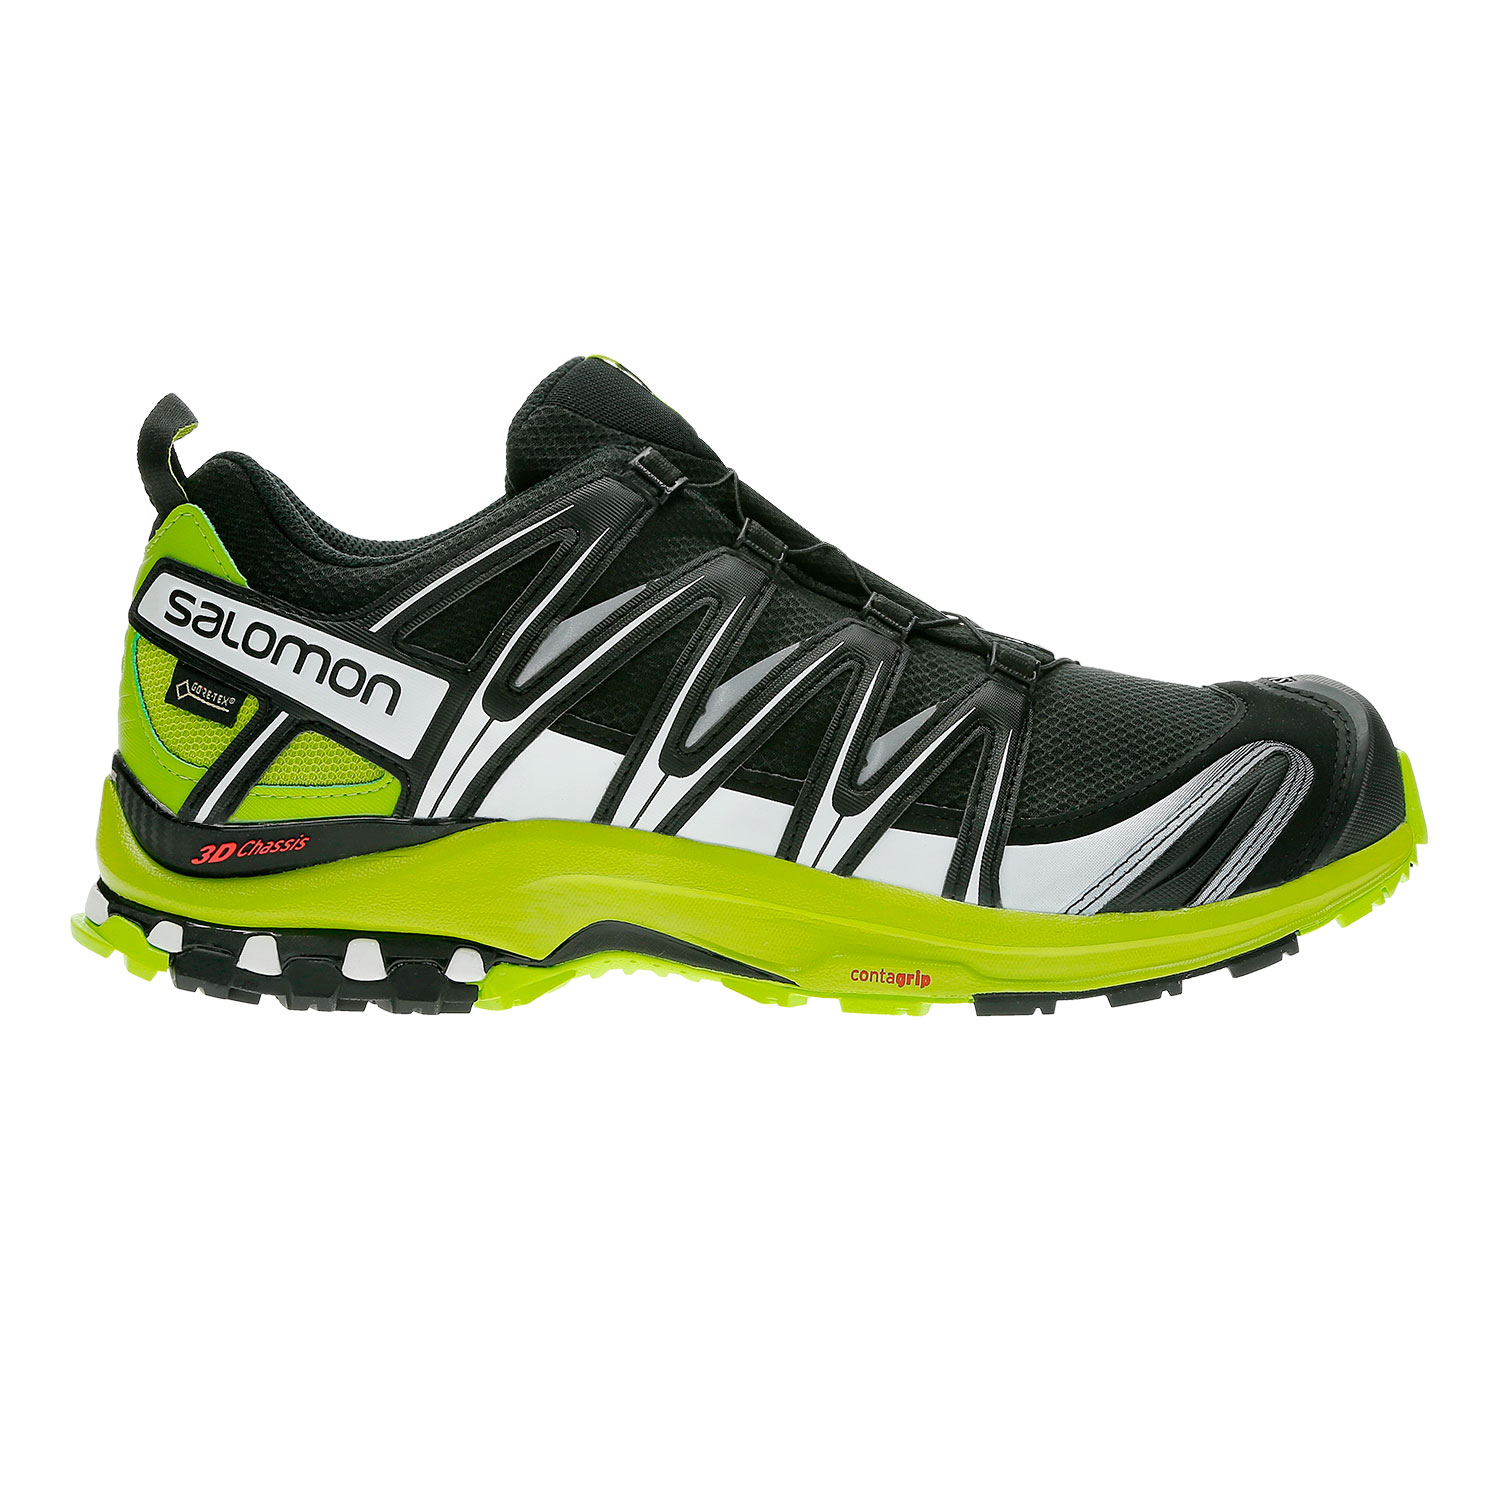 sports shoes 0e273 39bf8 XA Pro 3D GTX